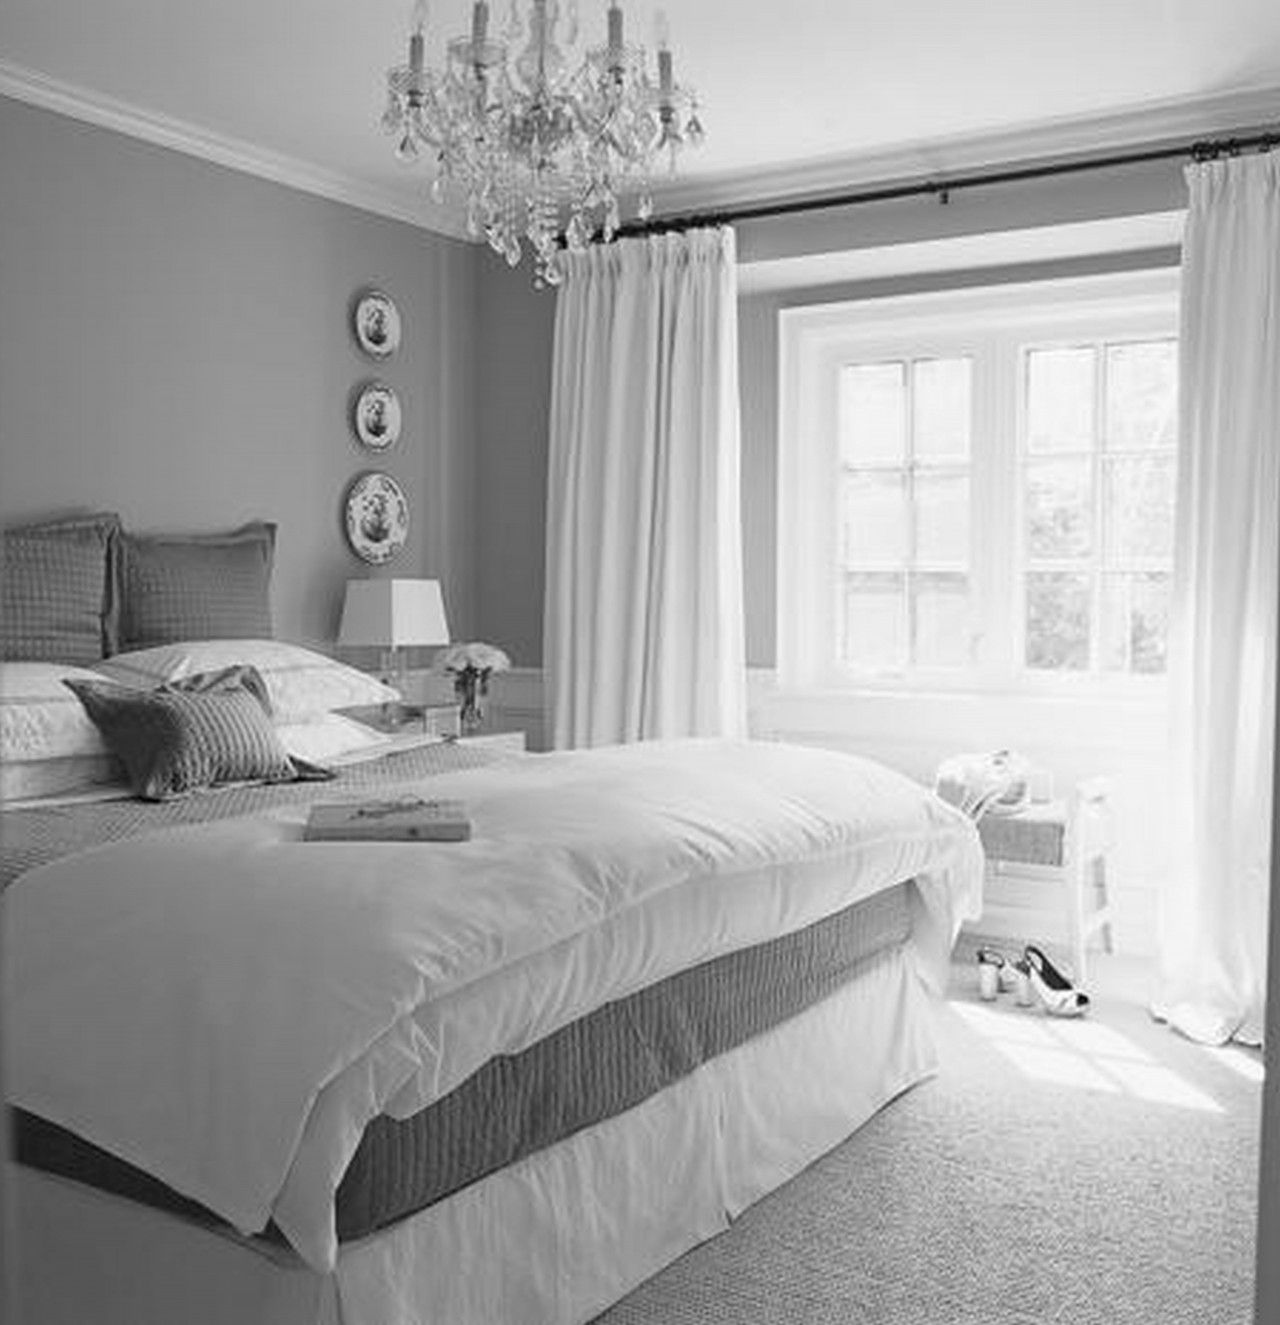 Black And White Small Bedroom Ideas Part - 23: Breathtaking Small Bedroom Ideas Blueprint Great Ikea Bedroom Furniture  Scenic Implements Balance, Bedroom Colors Greysecret